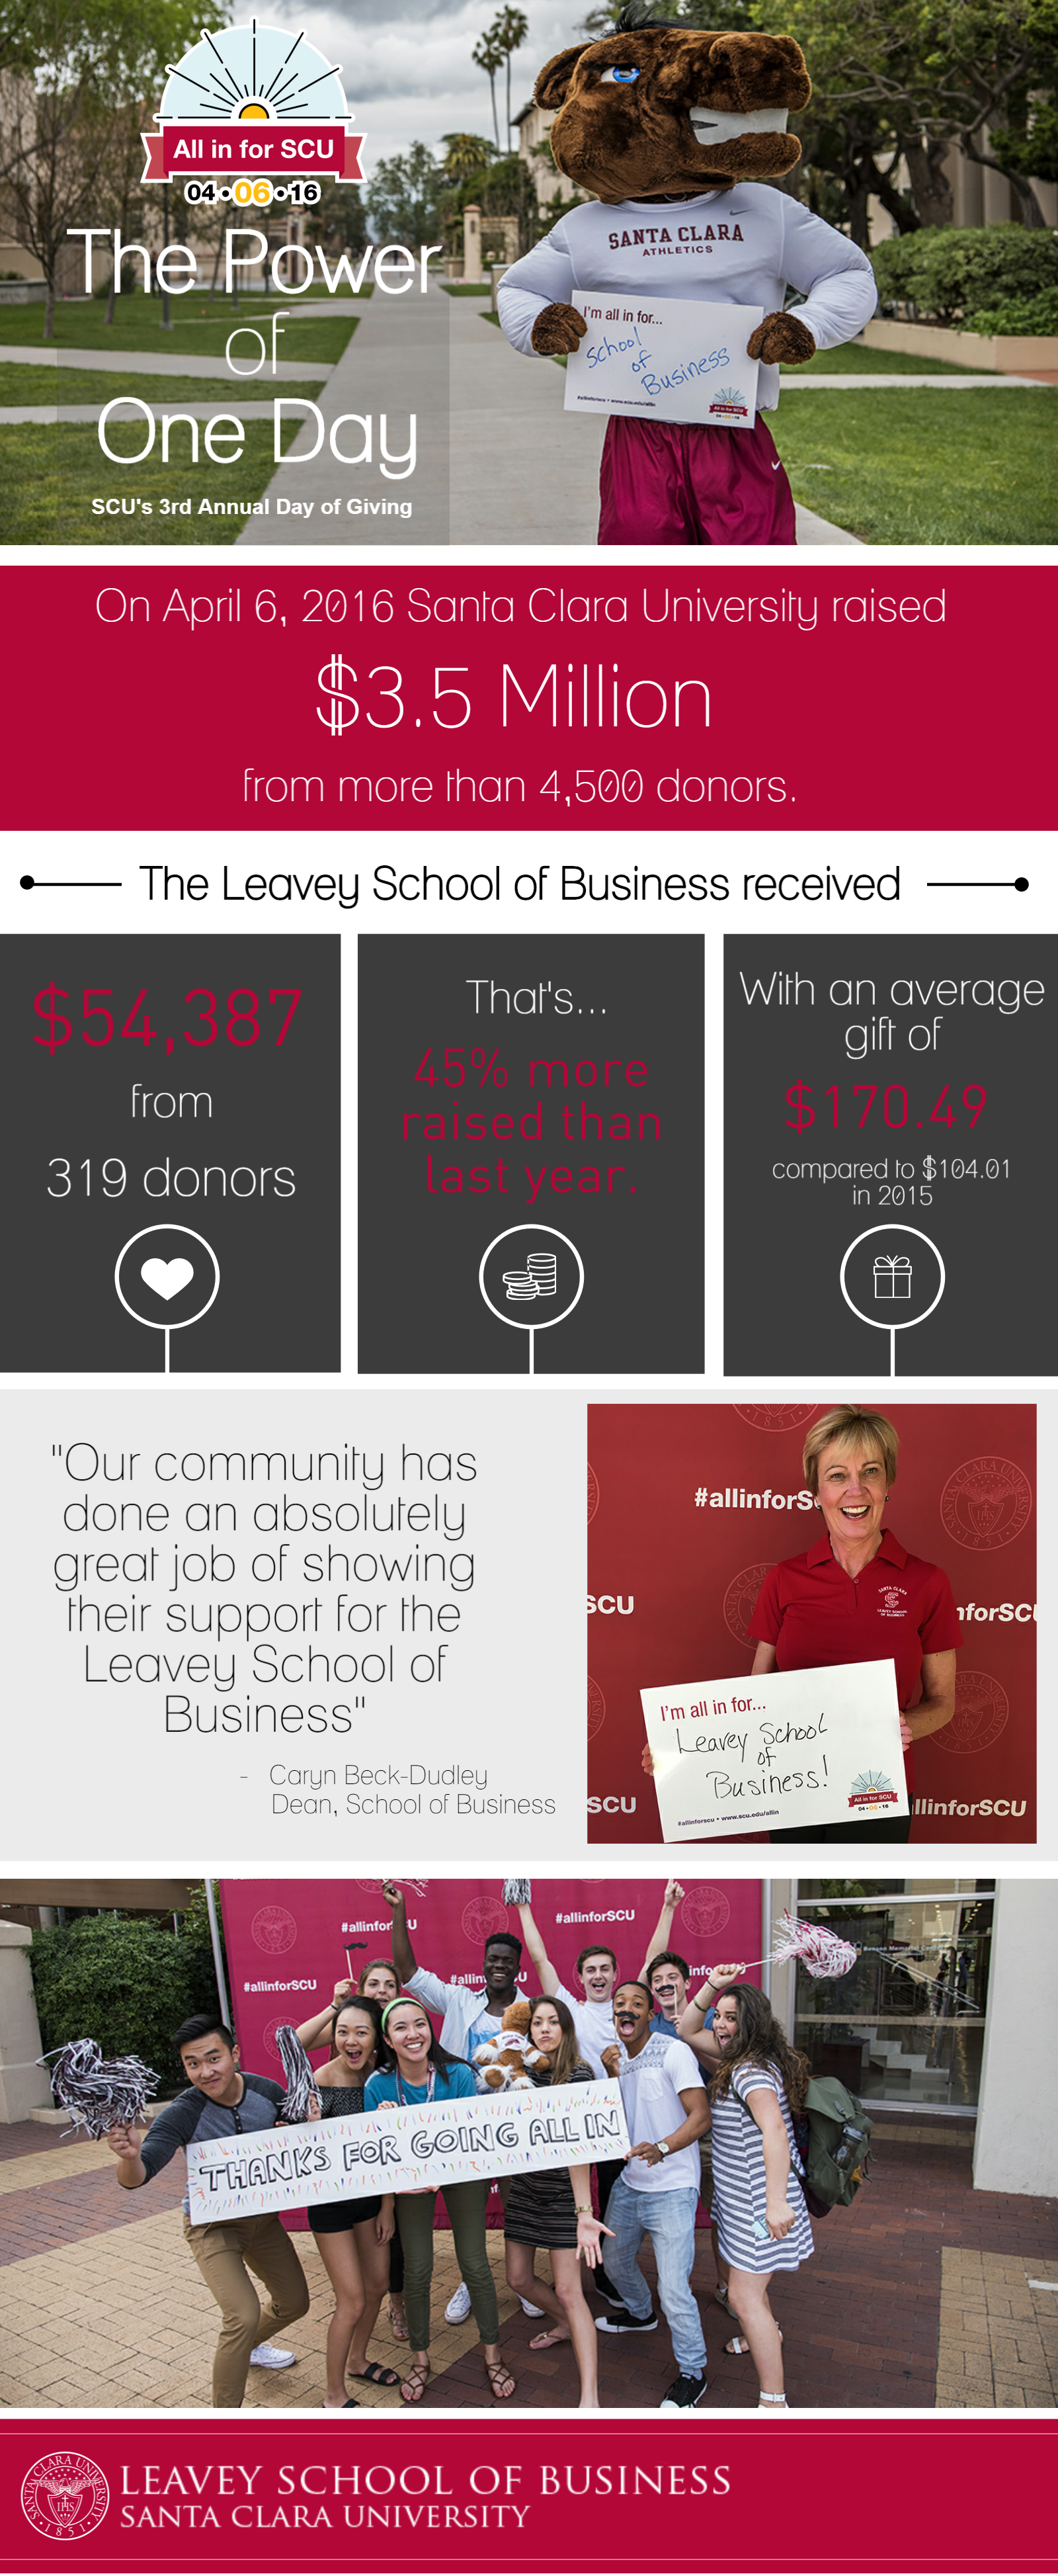 Business school results for SCU's 3rd annual Day of Giving